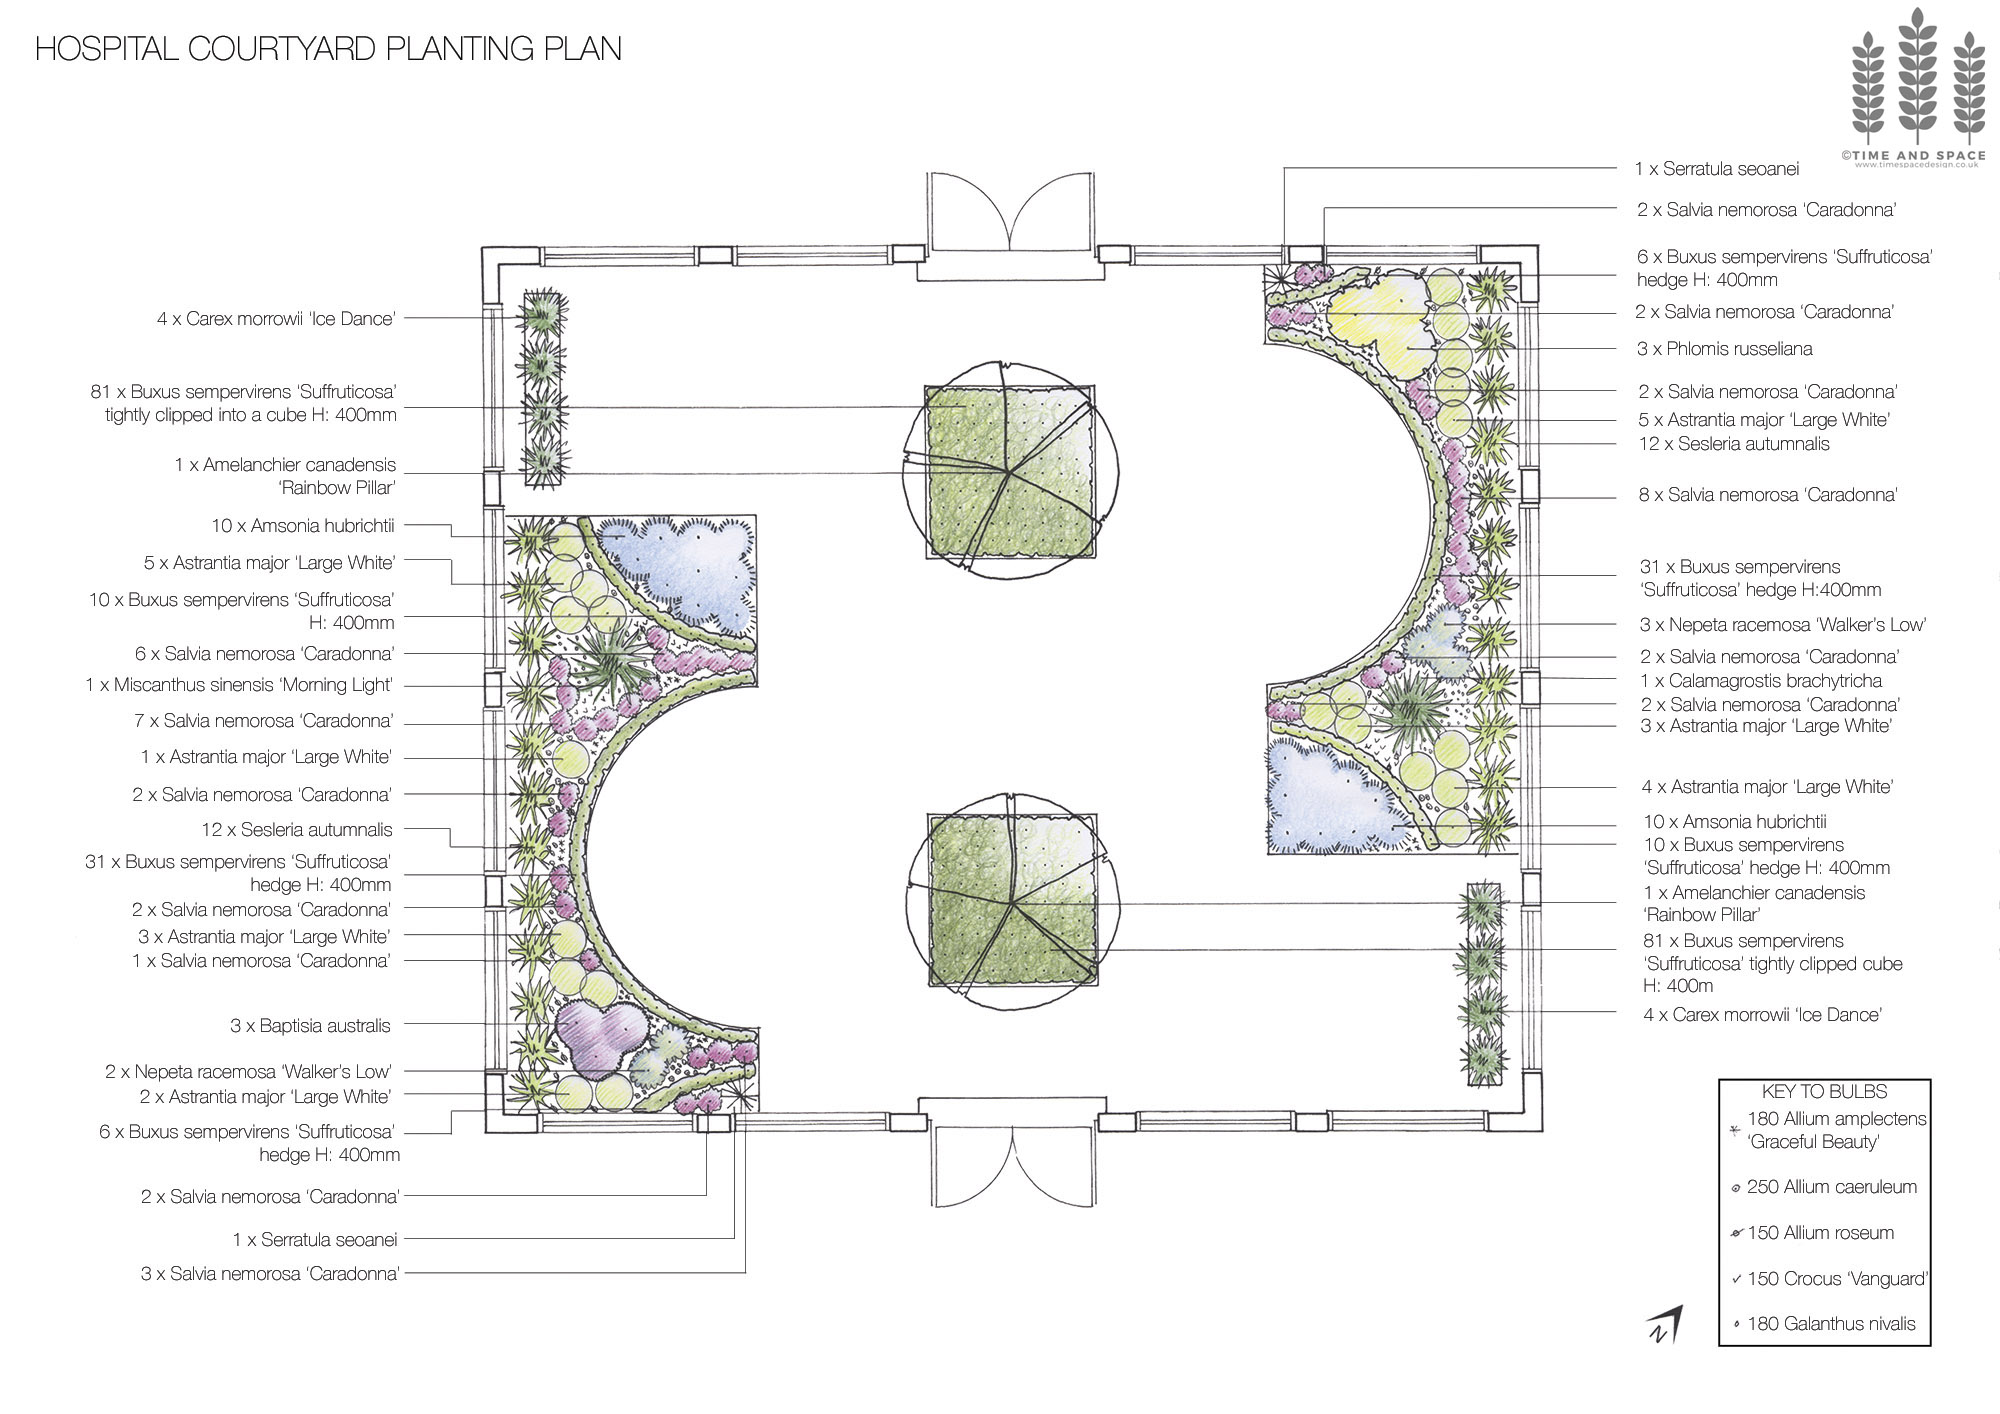 Planting scheme for a hospital courtyard